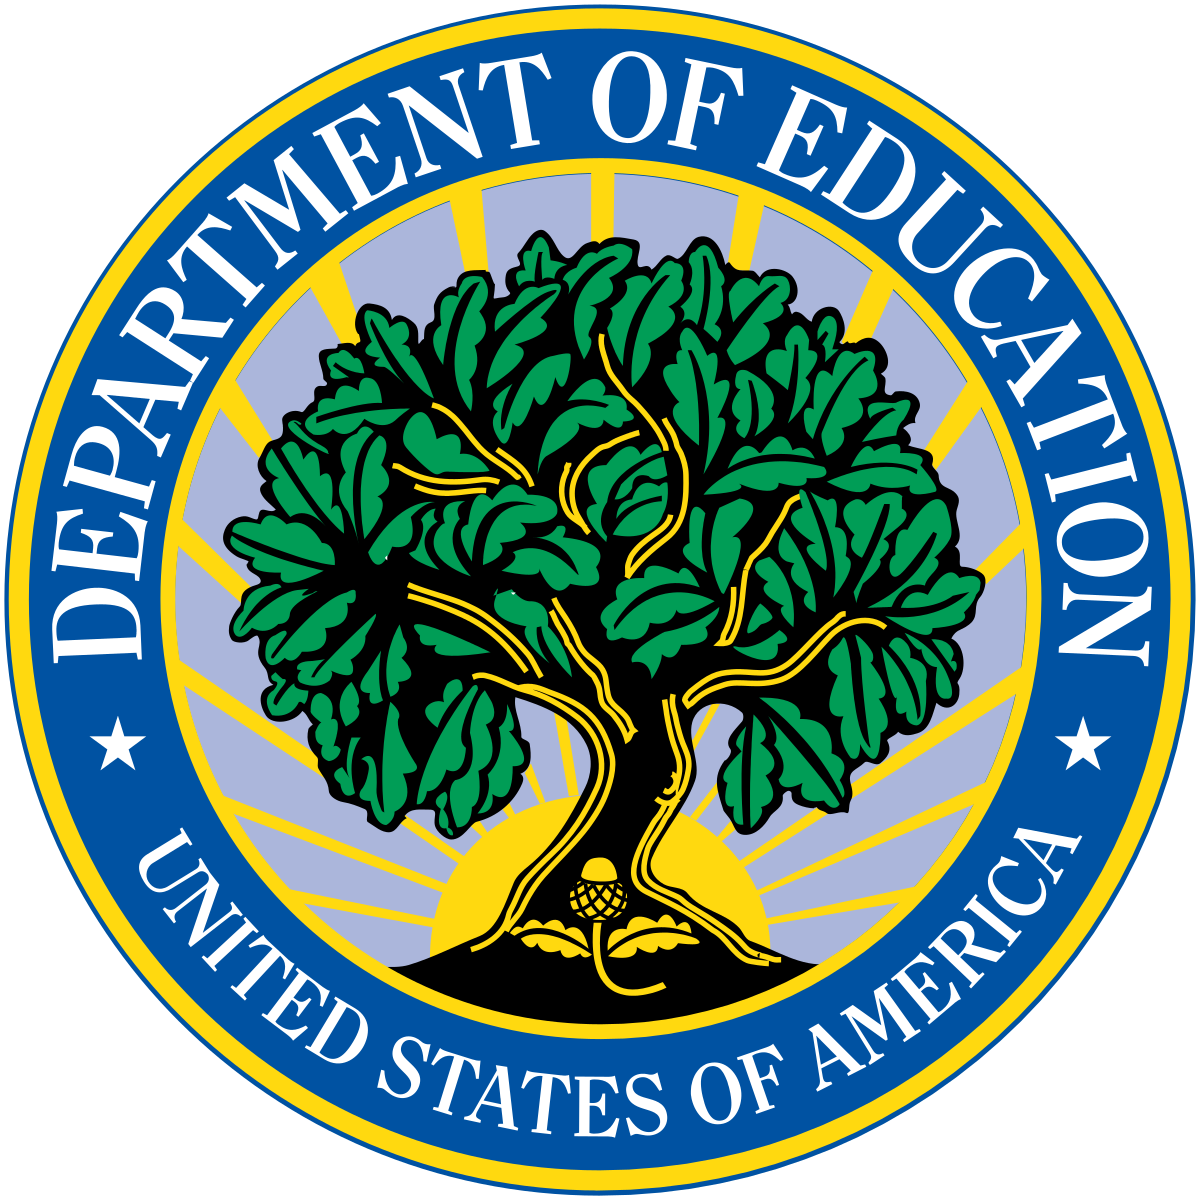 Seal for Department of Education